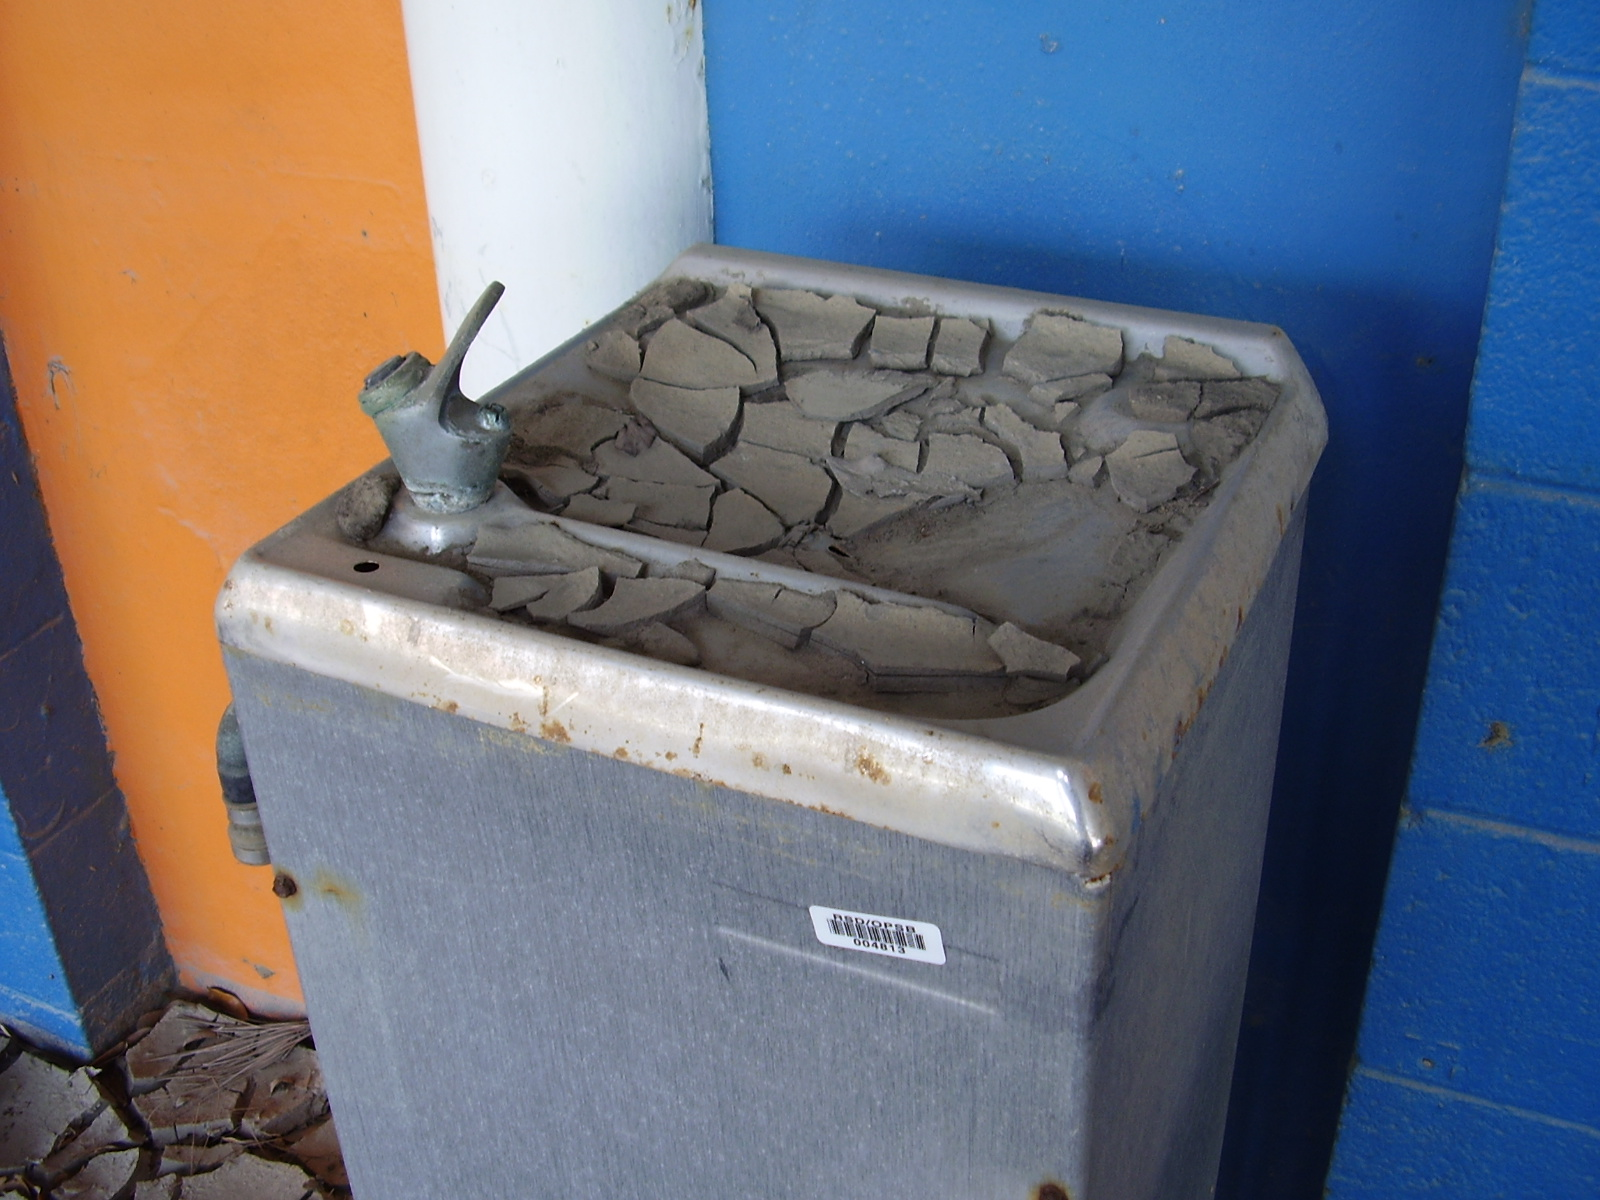 Water fountains schools - File School Drinking Fountain Jpg Wikimedia Commons